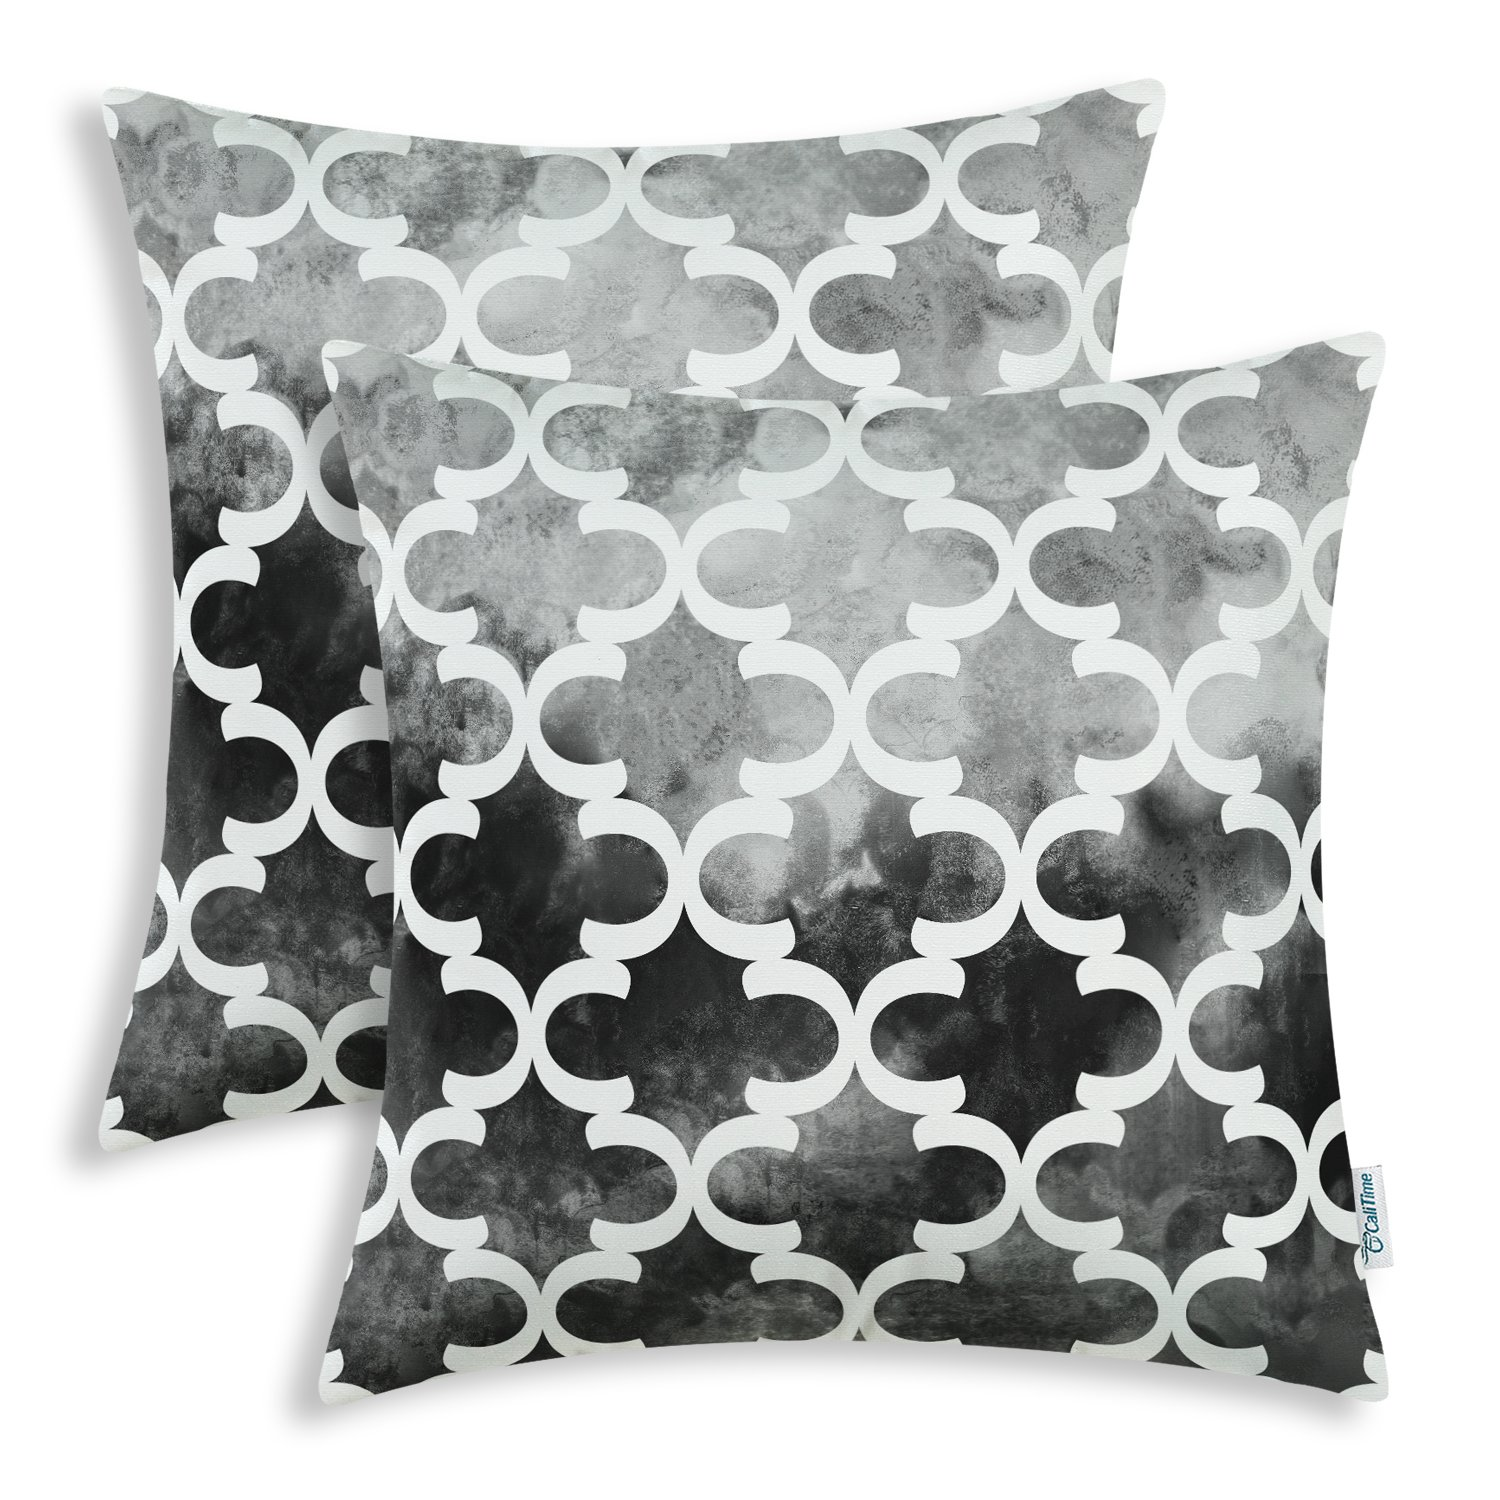 CaliTime Pack of 2 Cozy Fleece Throw Pillow Cases Covers for Couch Bed Sofa, Manual Hand Painted Print Colorful Quatrefoil Geometric, 20 X 20 Inches, Grey